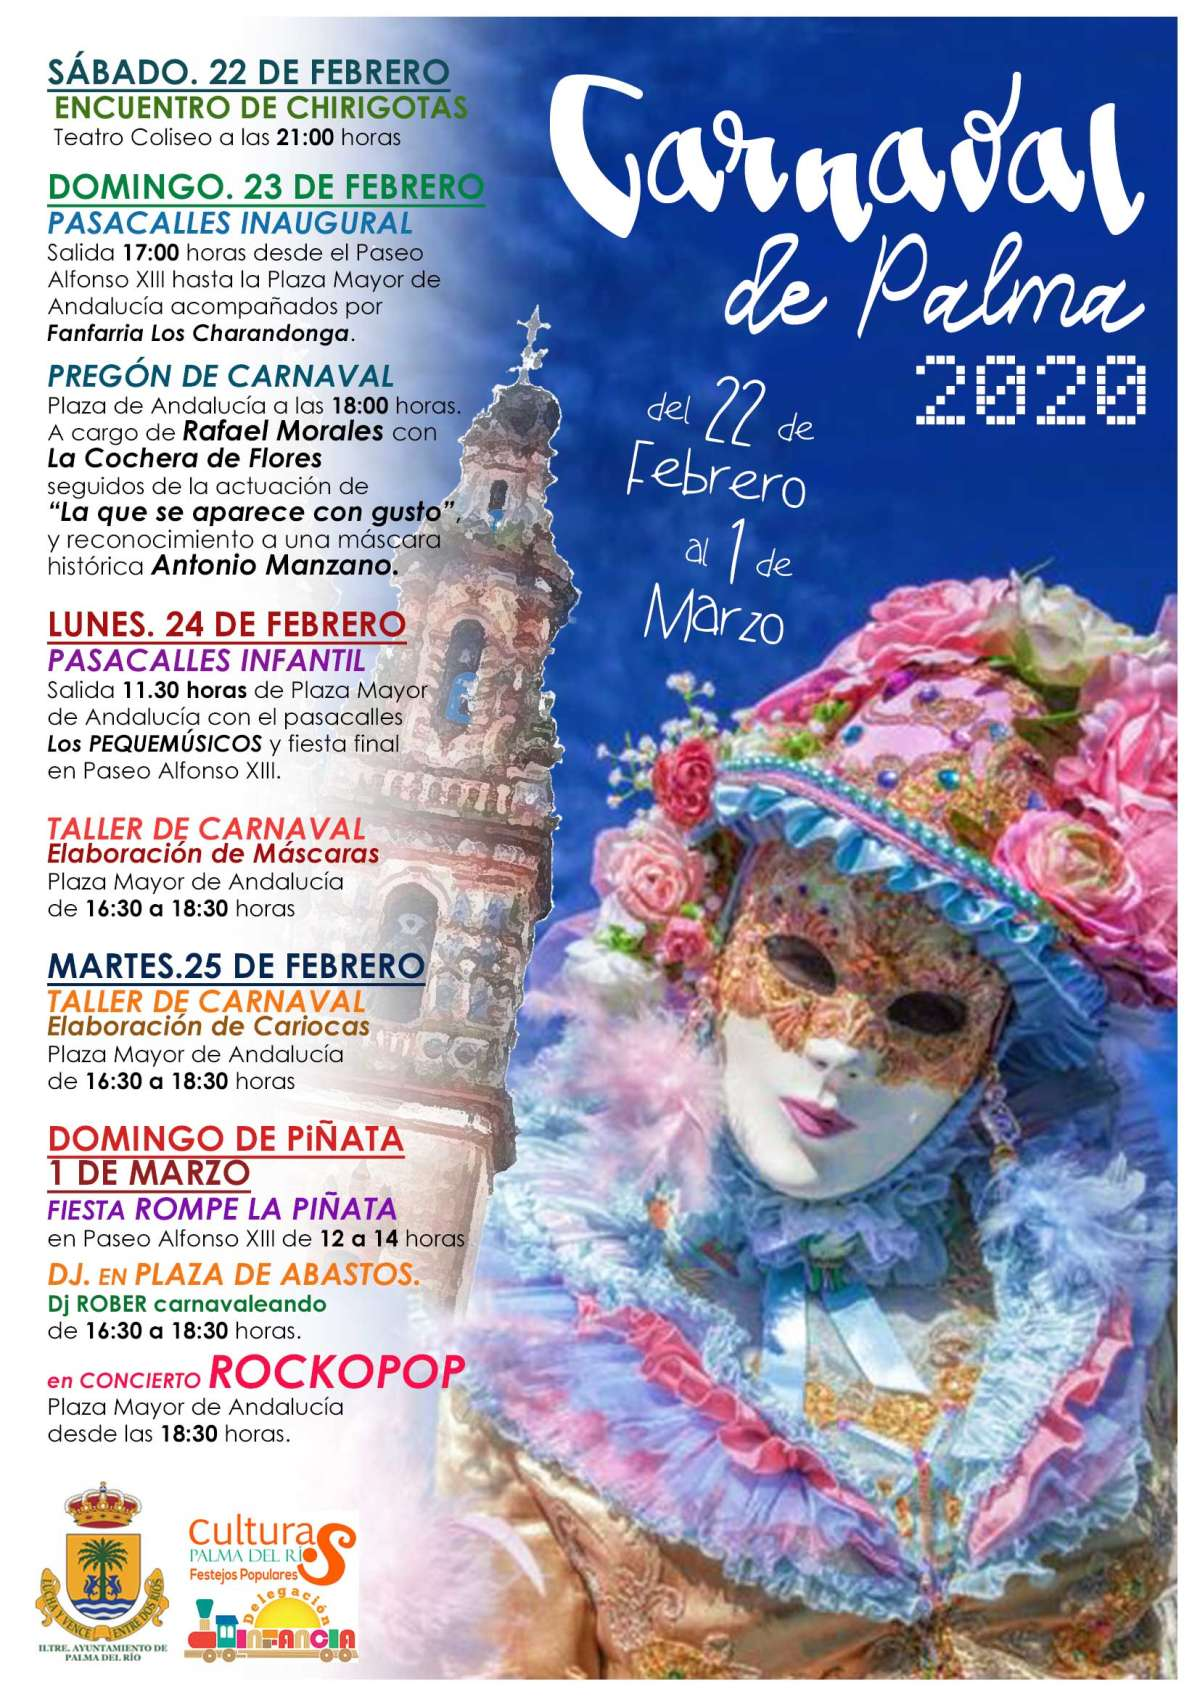 https://www.palmadelrio.es/sites/default/files/web-cartel-carnaval-2020-actividades.jpg